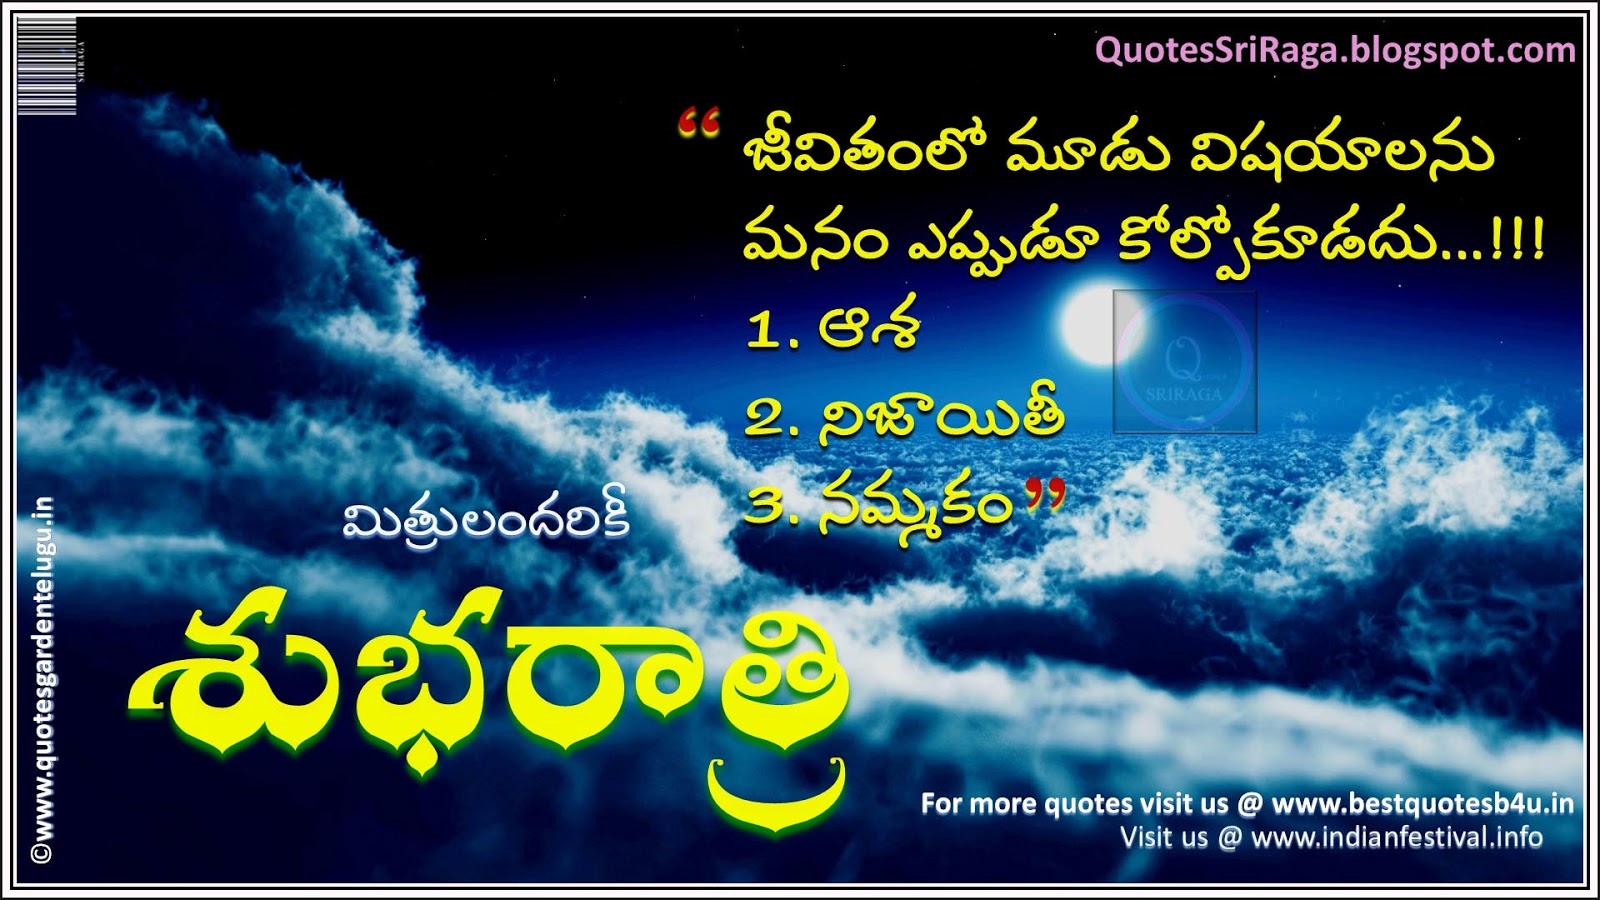 Beautiful Life Wallpapers With Quotes Telugu Good Night Messages Sms Quotes Garden Telugu